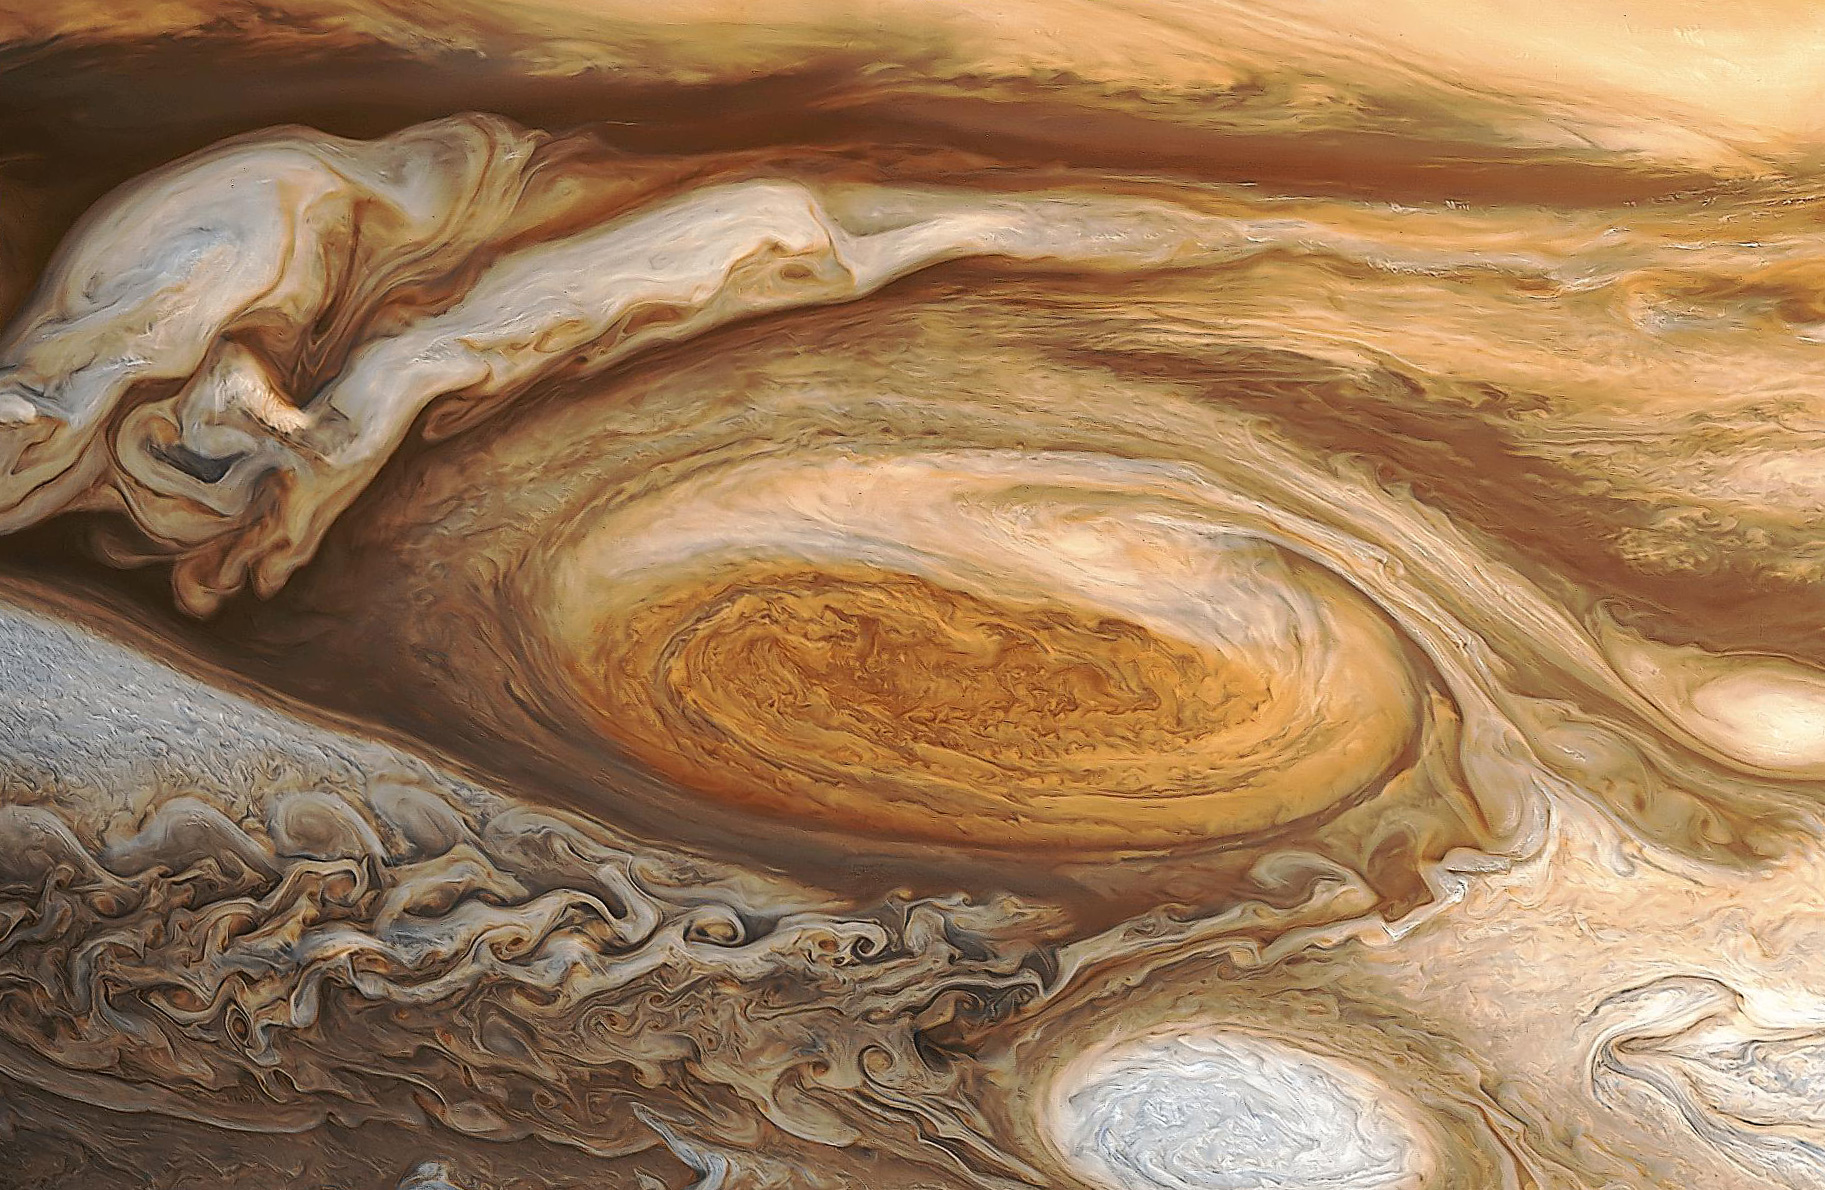 Jupiter's Great Red Spot may be the source of the planet's higher-than-expected atmospheric temperature.